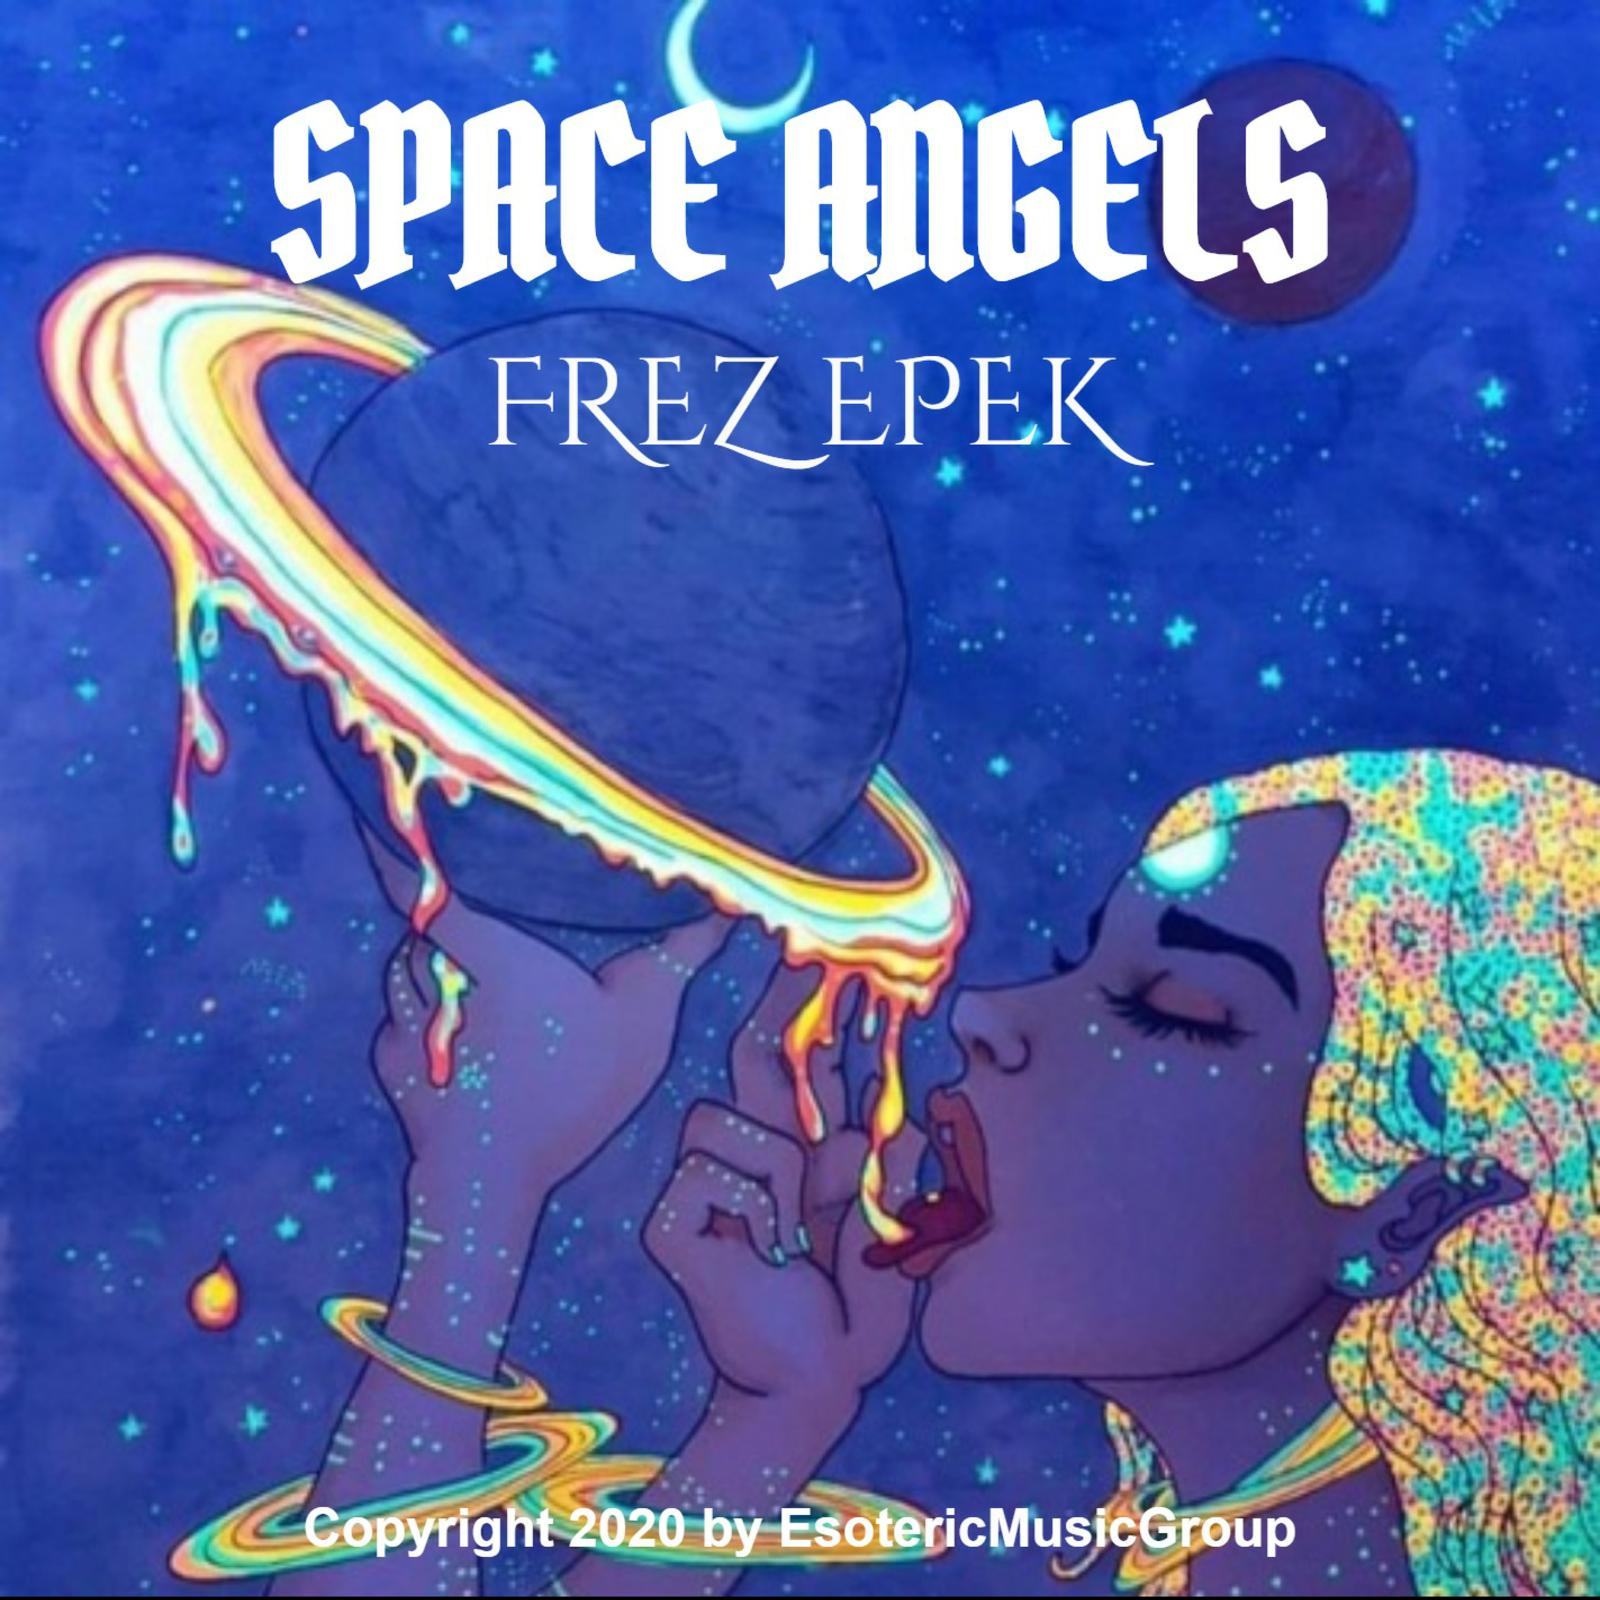 """SPACE ANGELS"" prt1 By FREZ EPEK digital download track  2 Esoterica3"